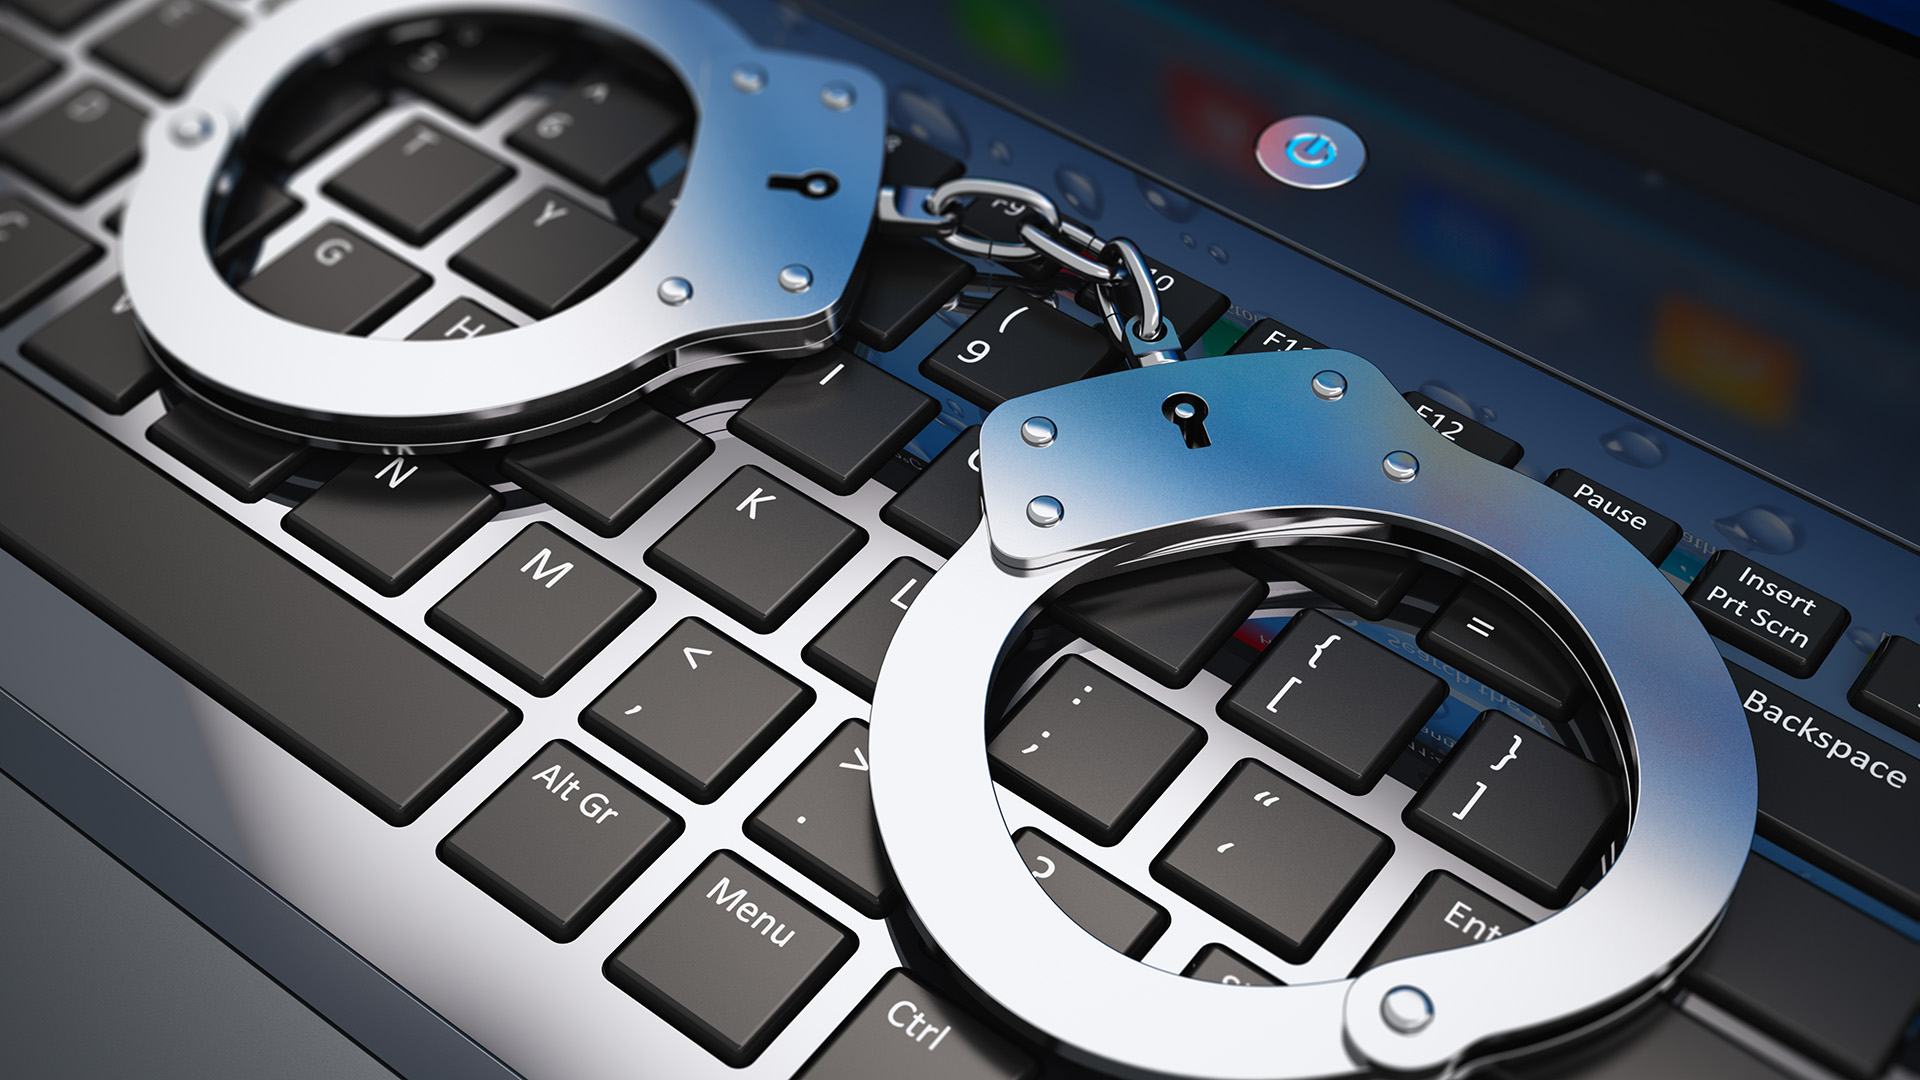 handcuffs-computer-cyber-keyboard-arrested